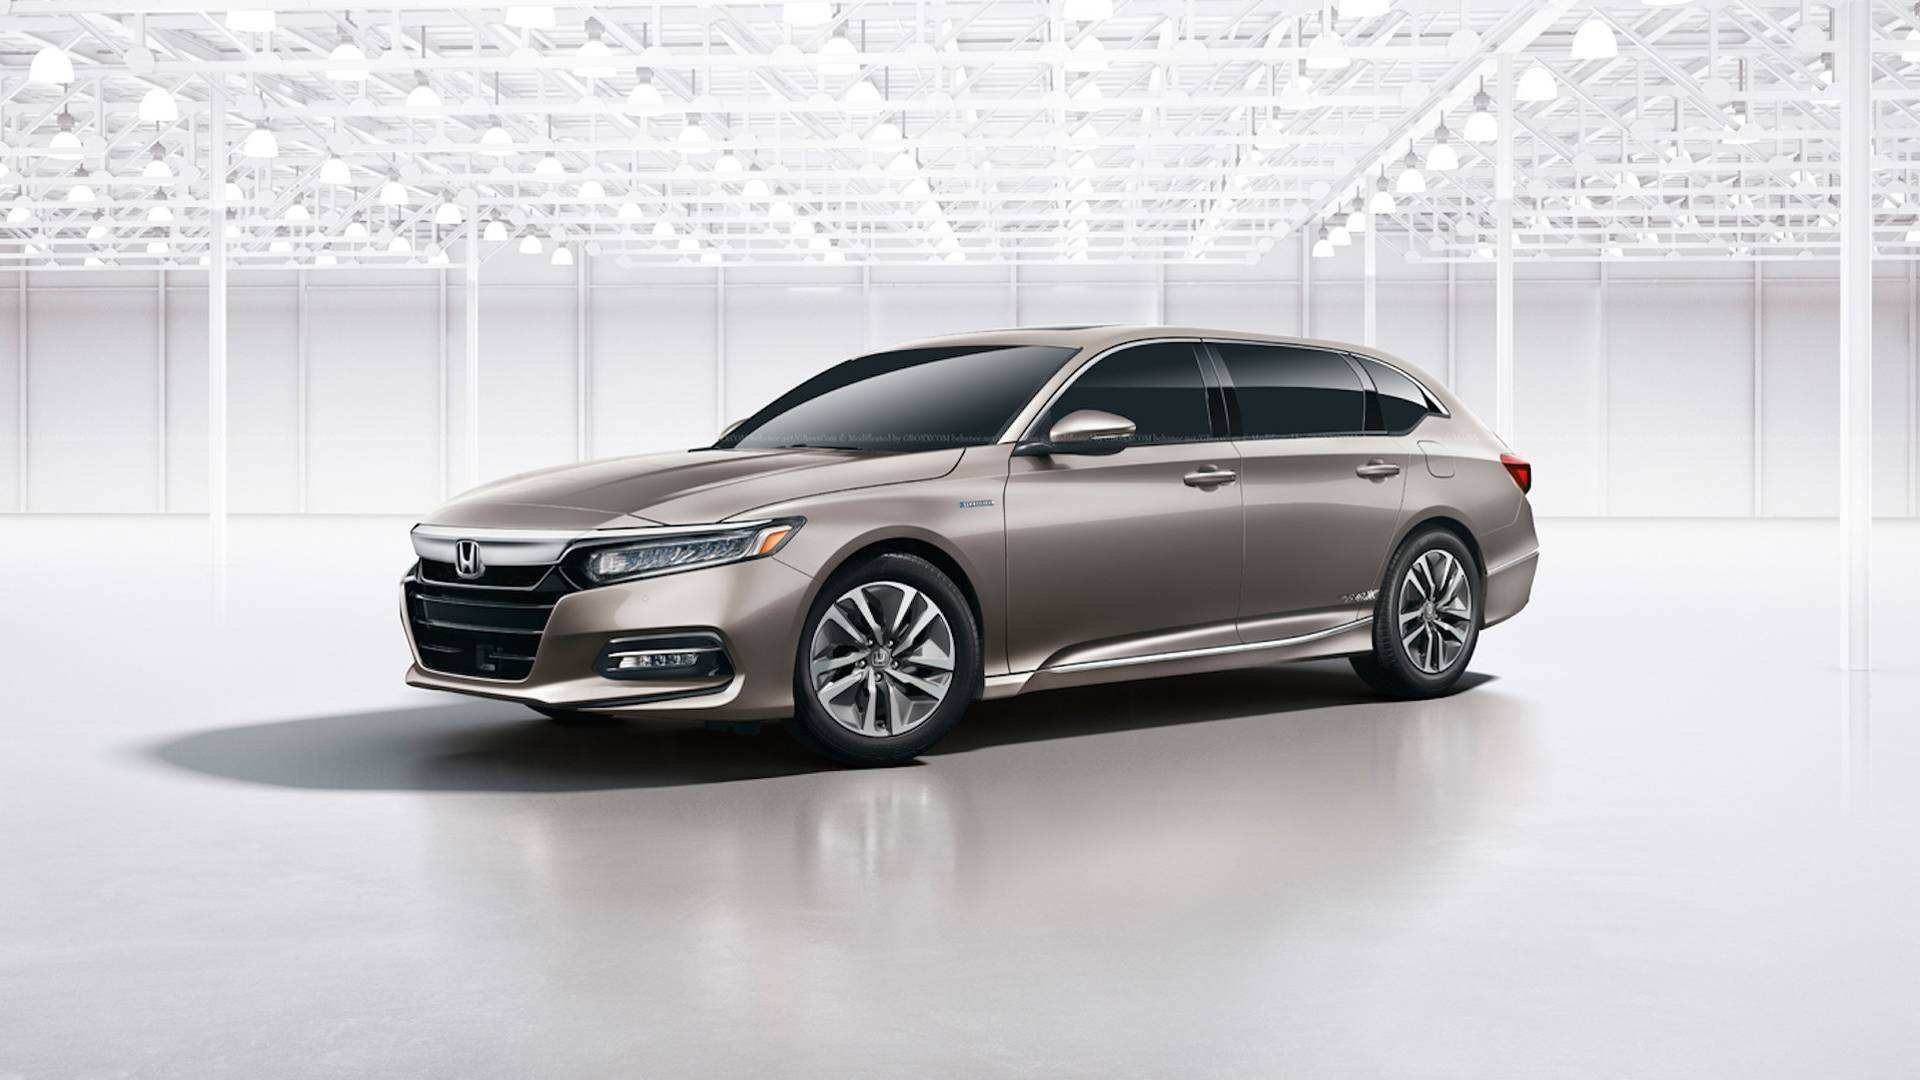 58 Gallery of 2019 Honda Accord Wagon Configurations for 2019 Honda Accord Wagon